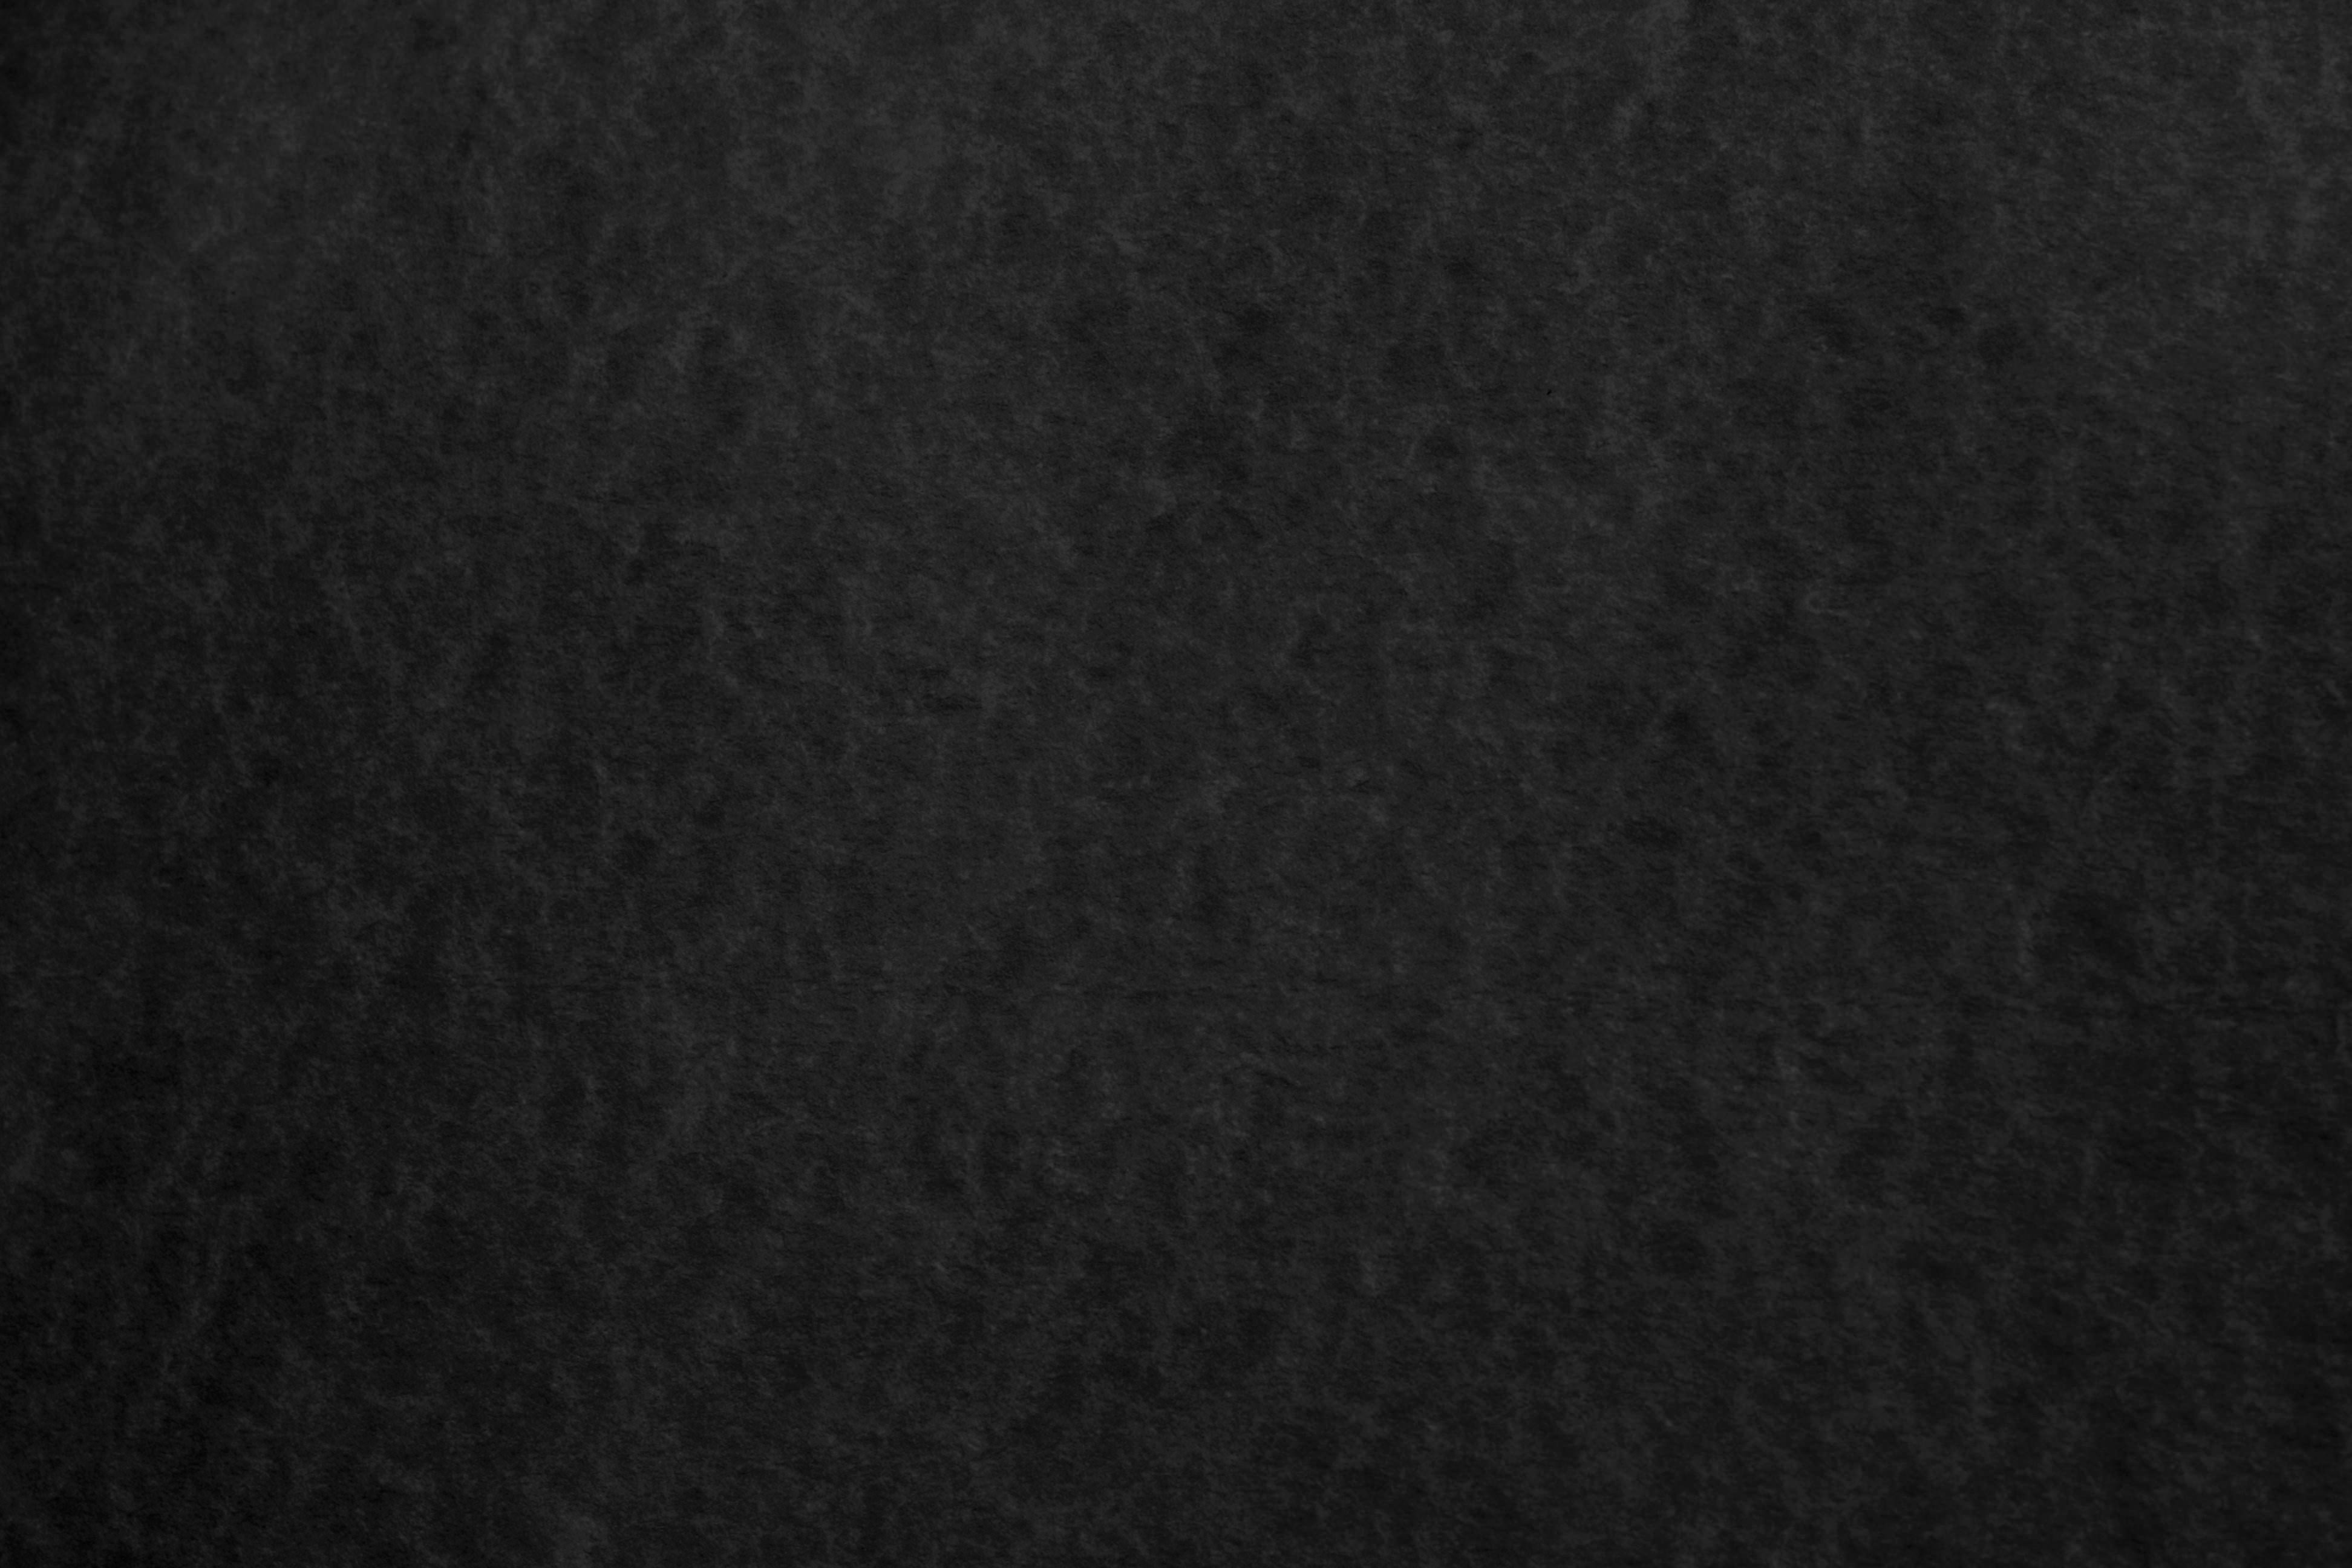 25+ Free Black Paper Textures